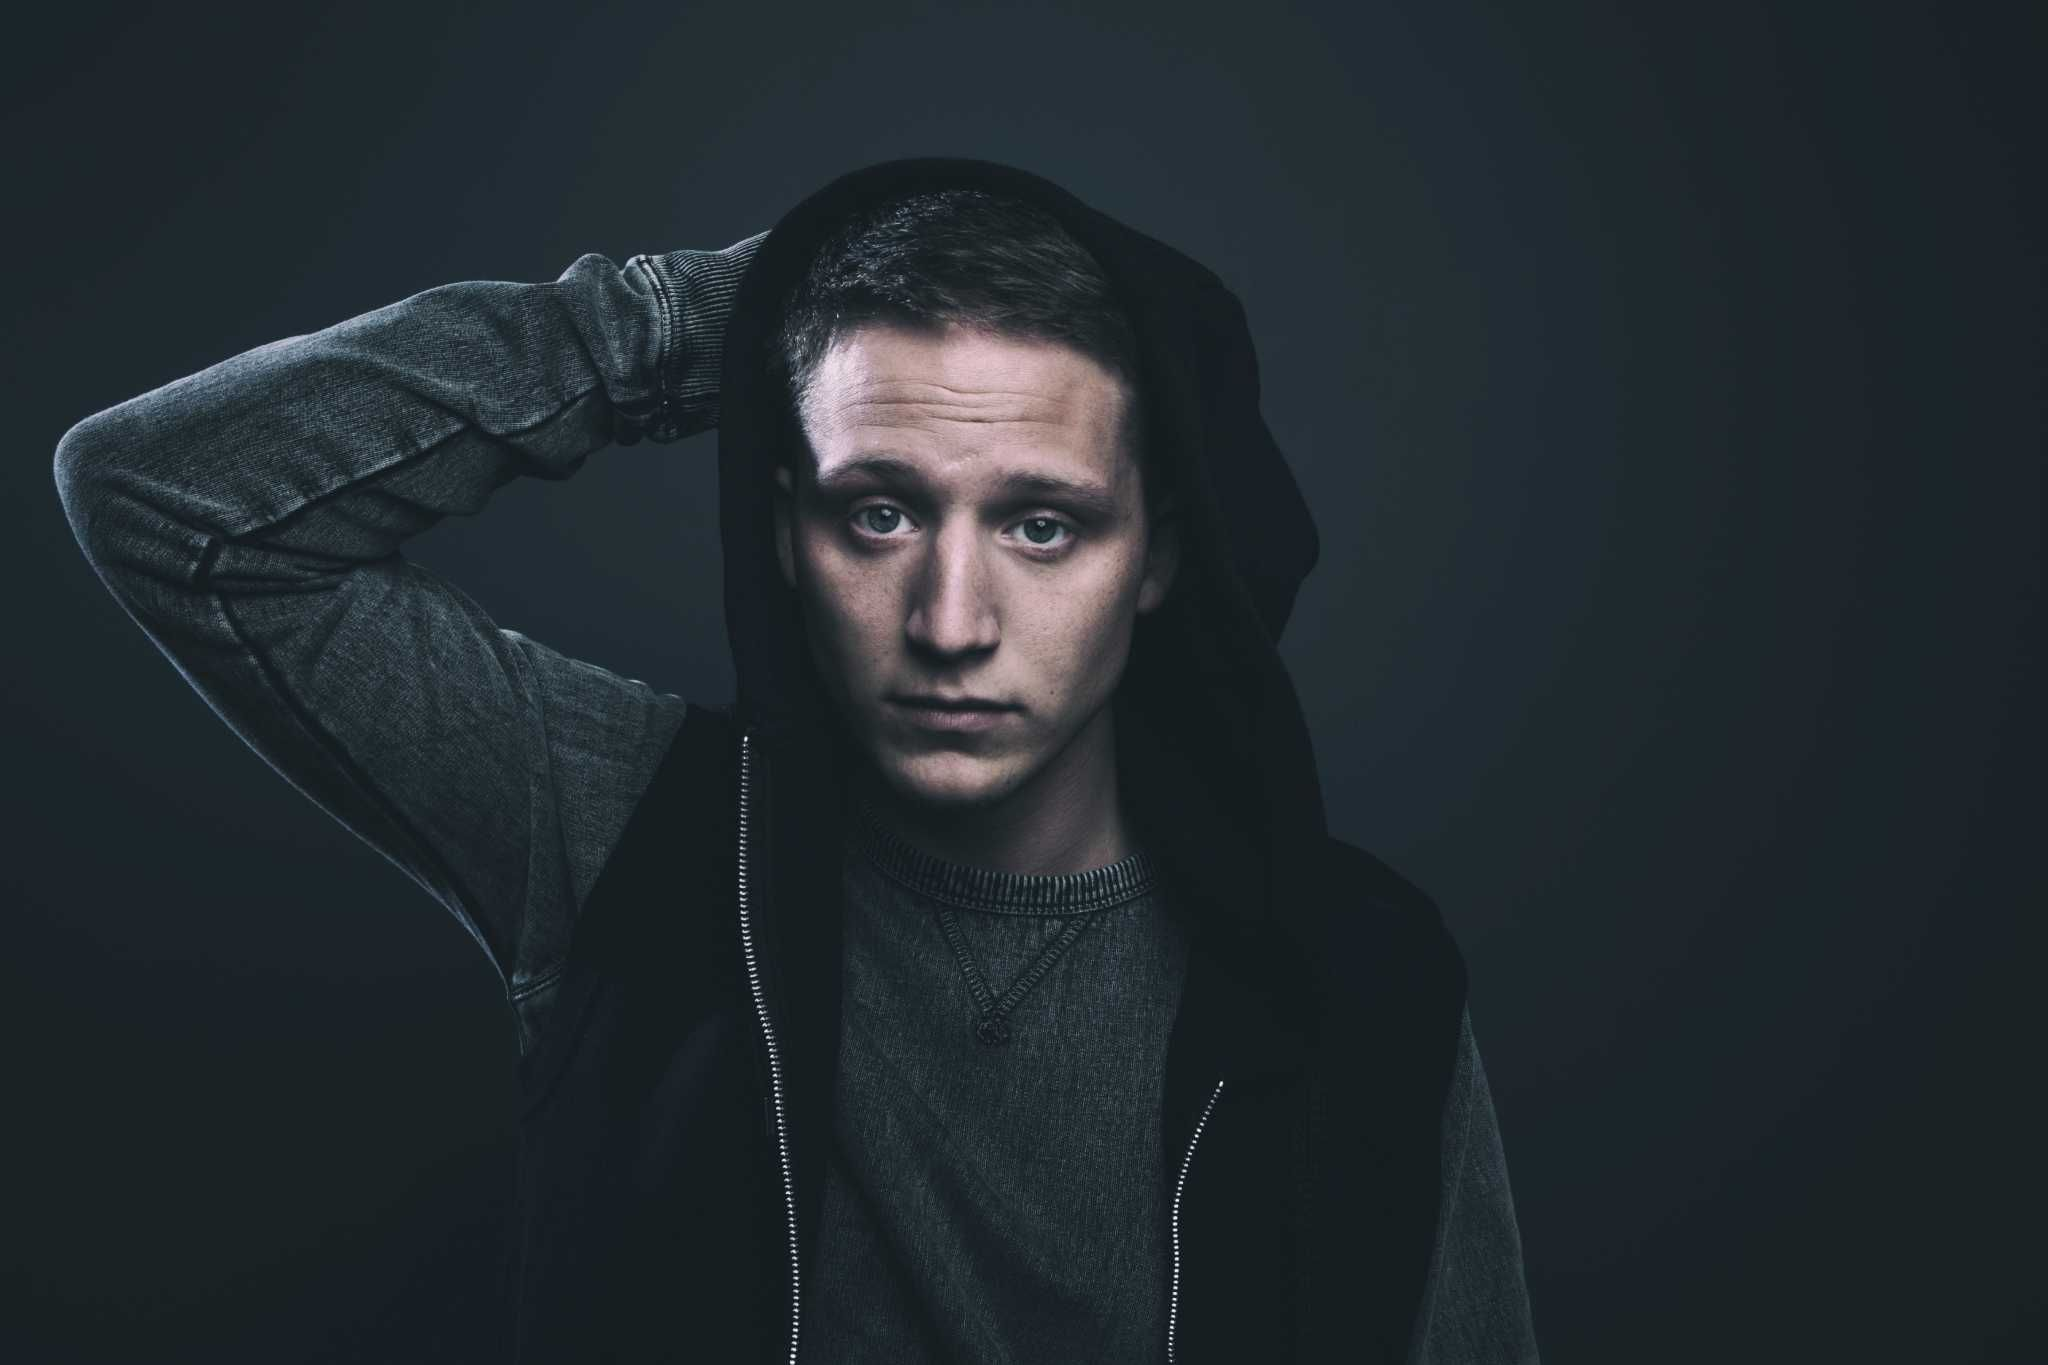 Christian rapper nf looks ahead to therapy session